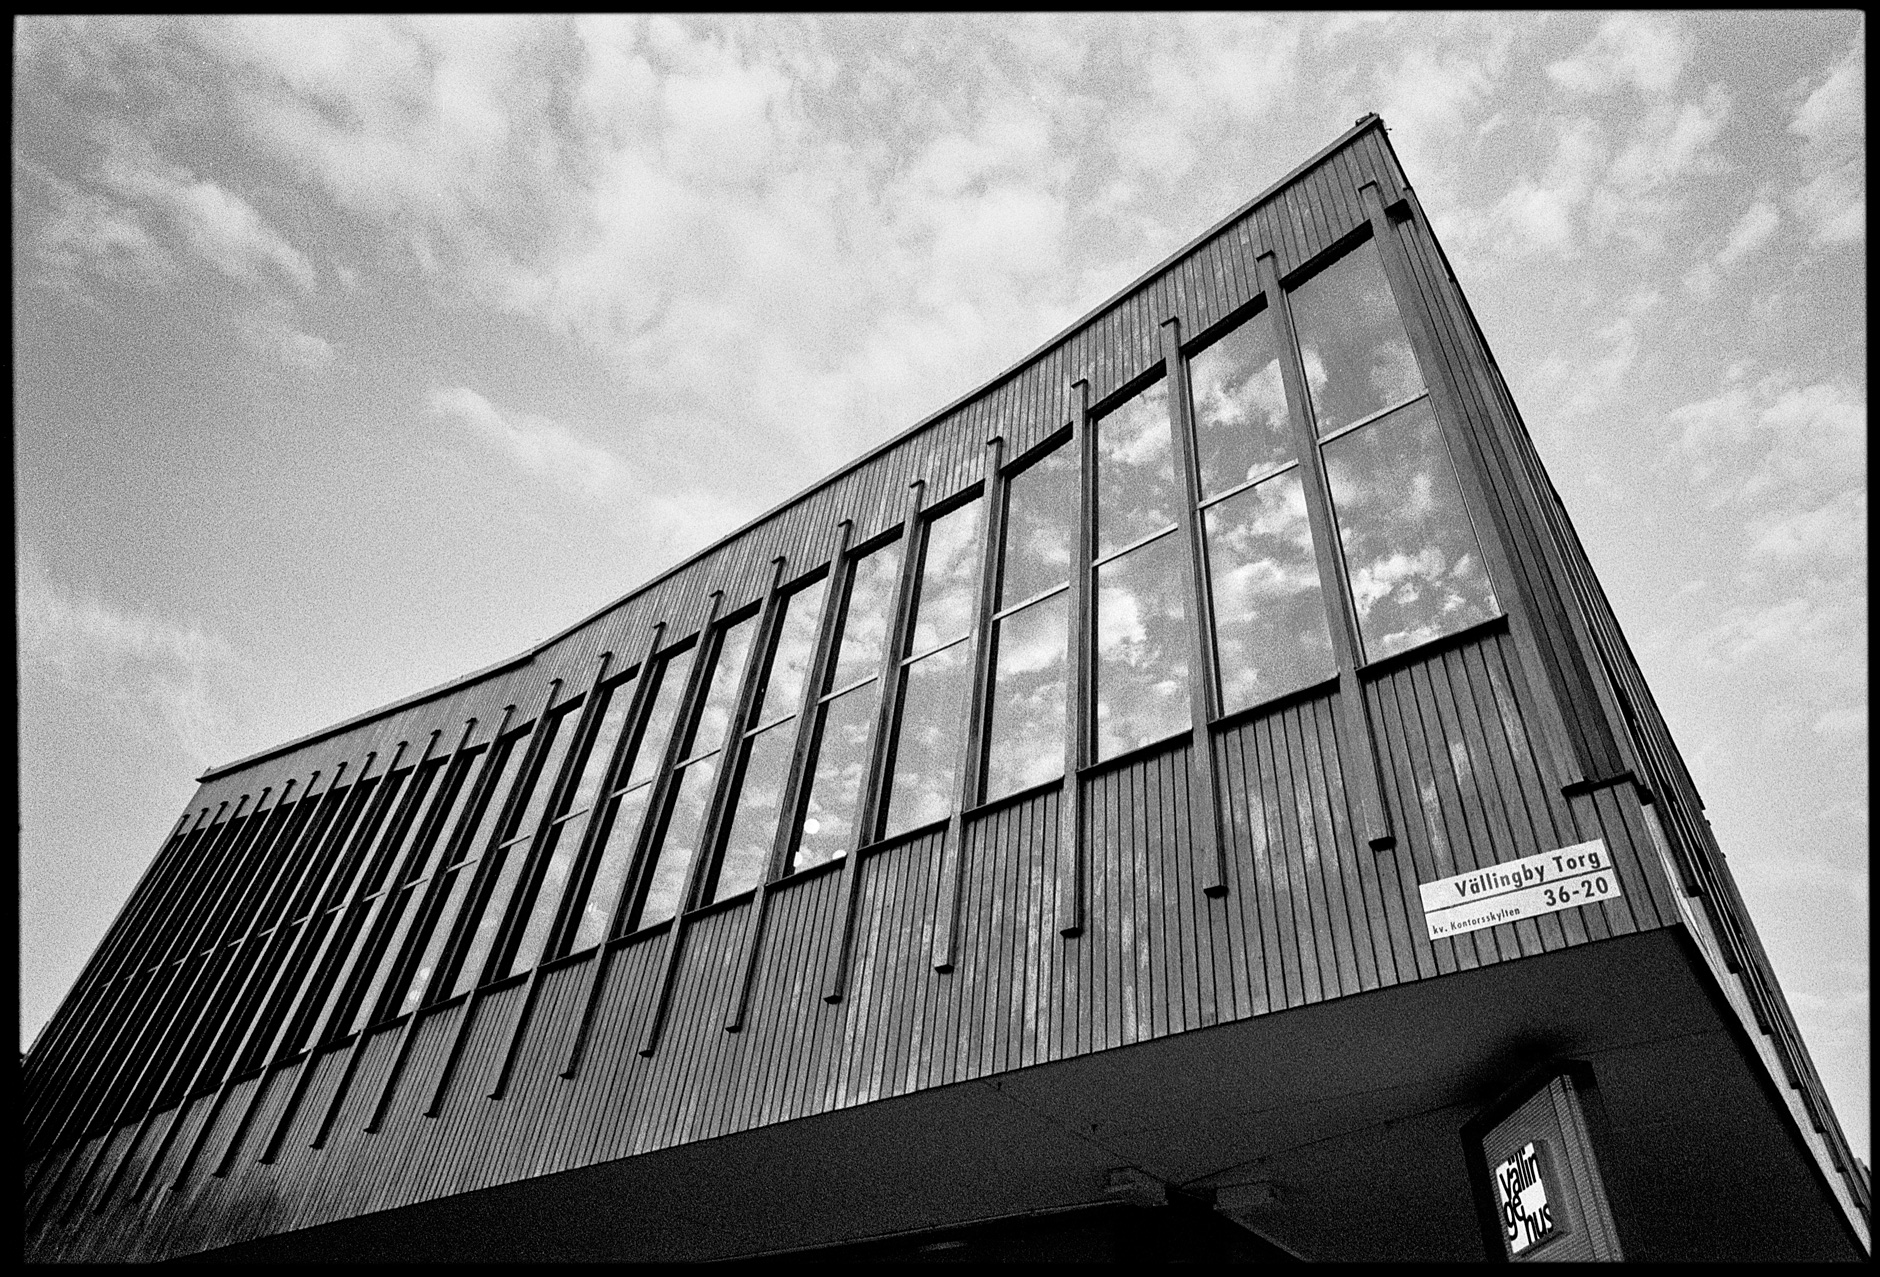 Architecture/street photography with a 21mm lens, part 4